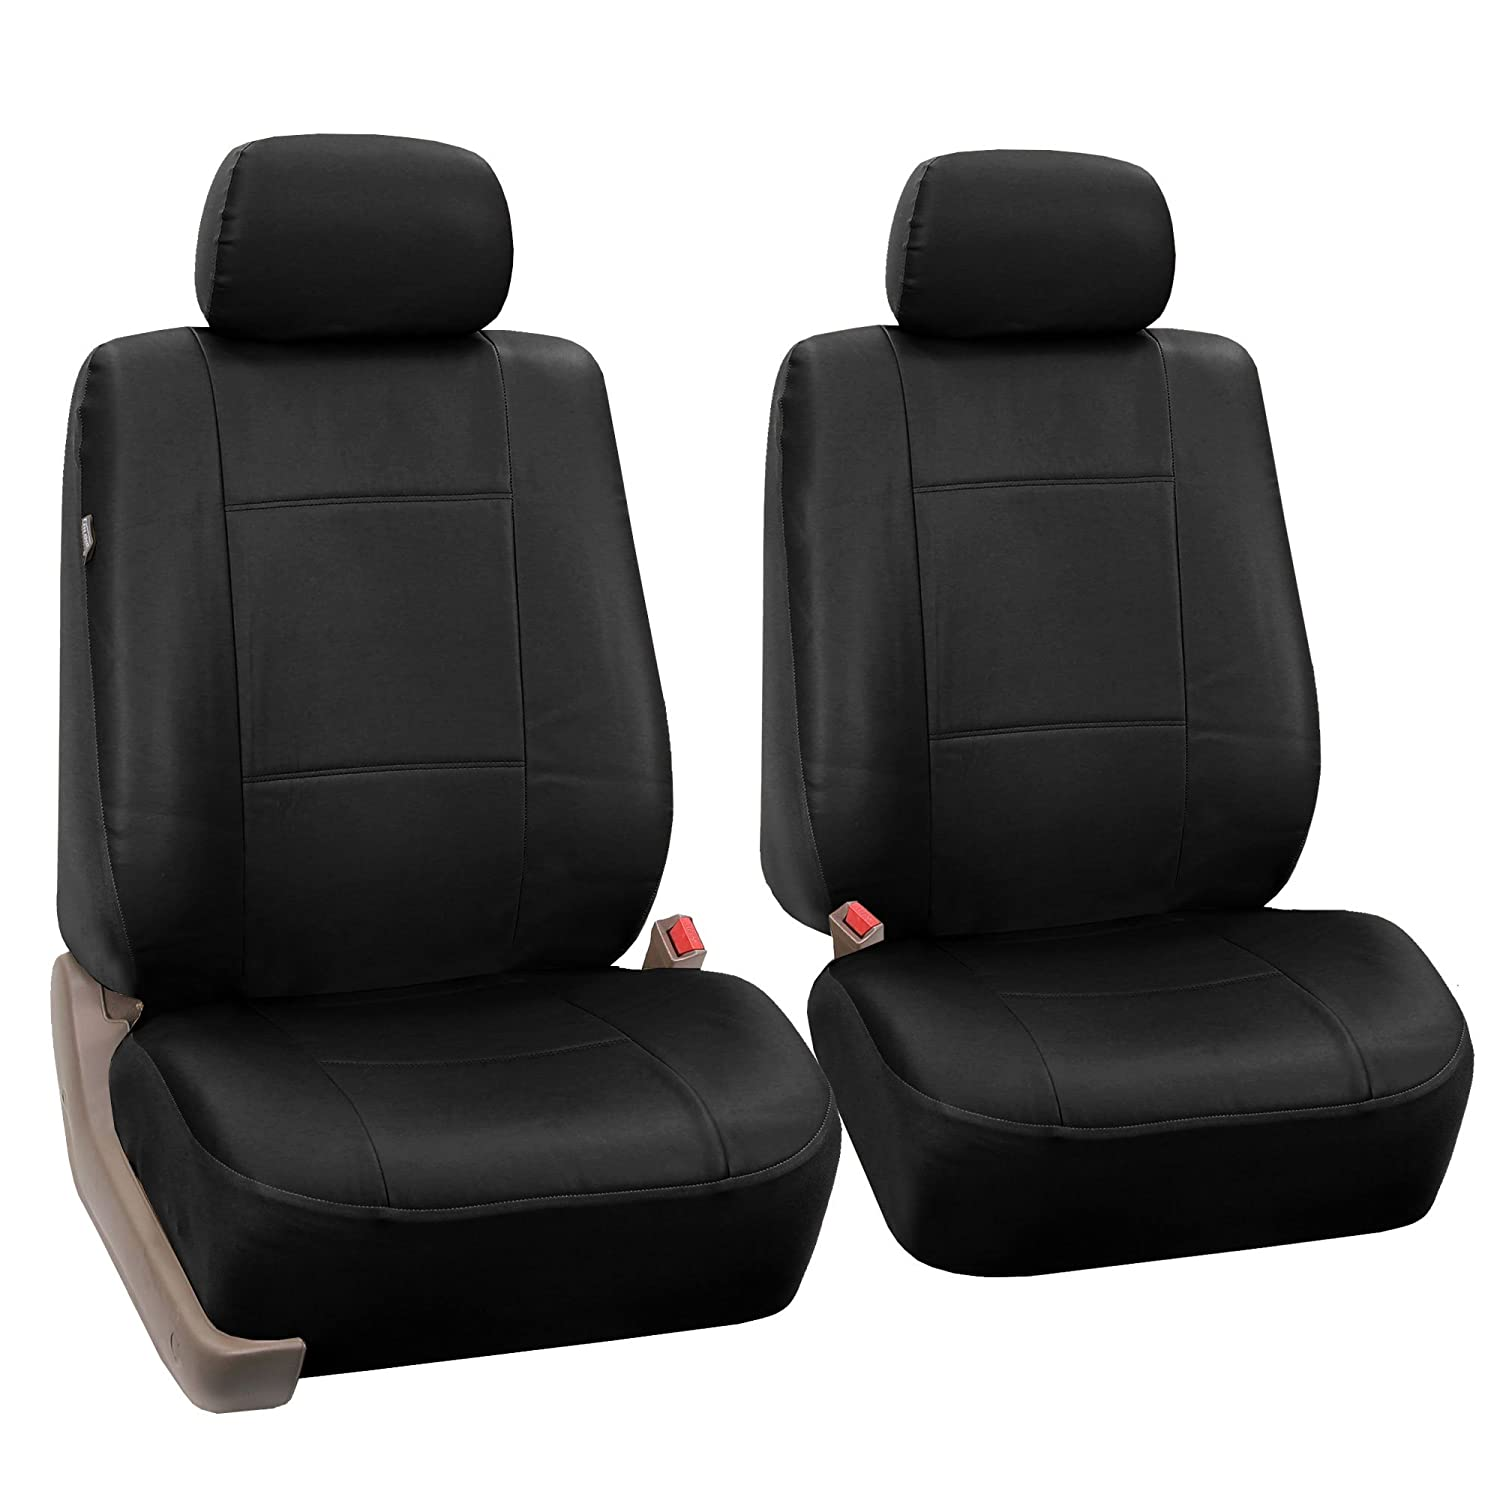 Fh Group Pu002102 Pair Set Pu Leather Bucket Seat 1942 Chevy Truck Covers Airbag Compatible Black Color Fit Most Car Suv Or Van Automotive